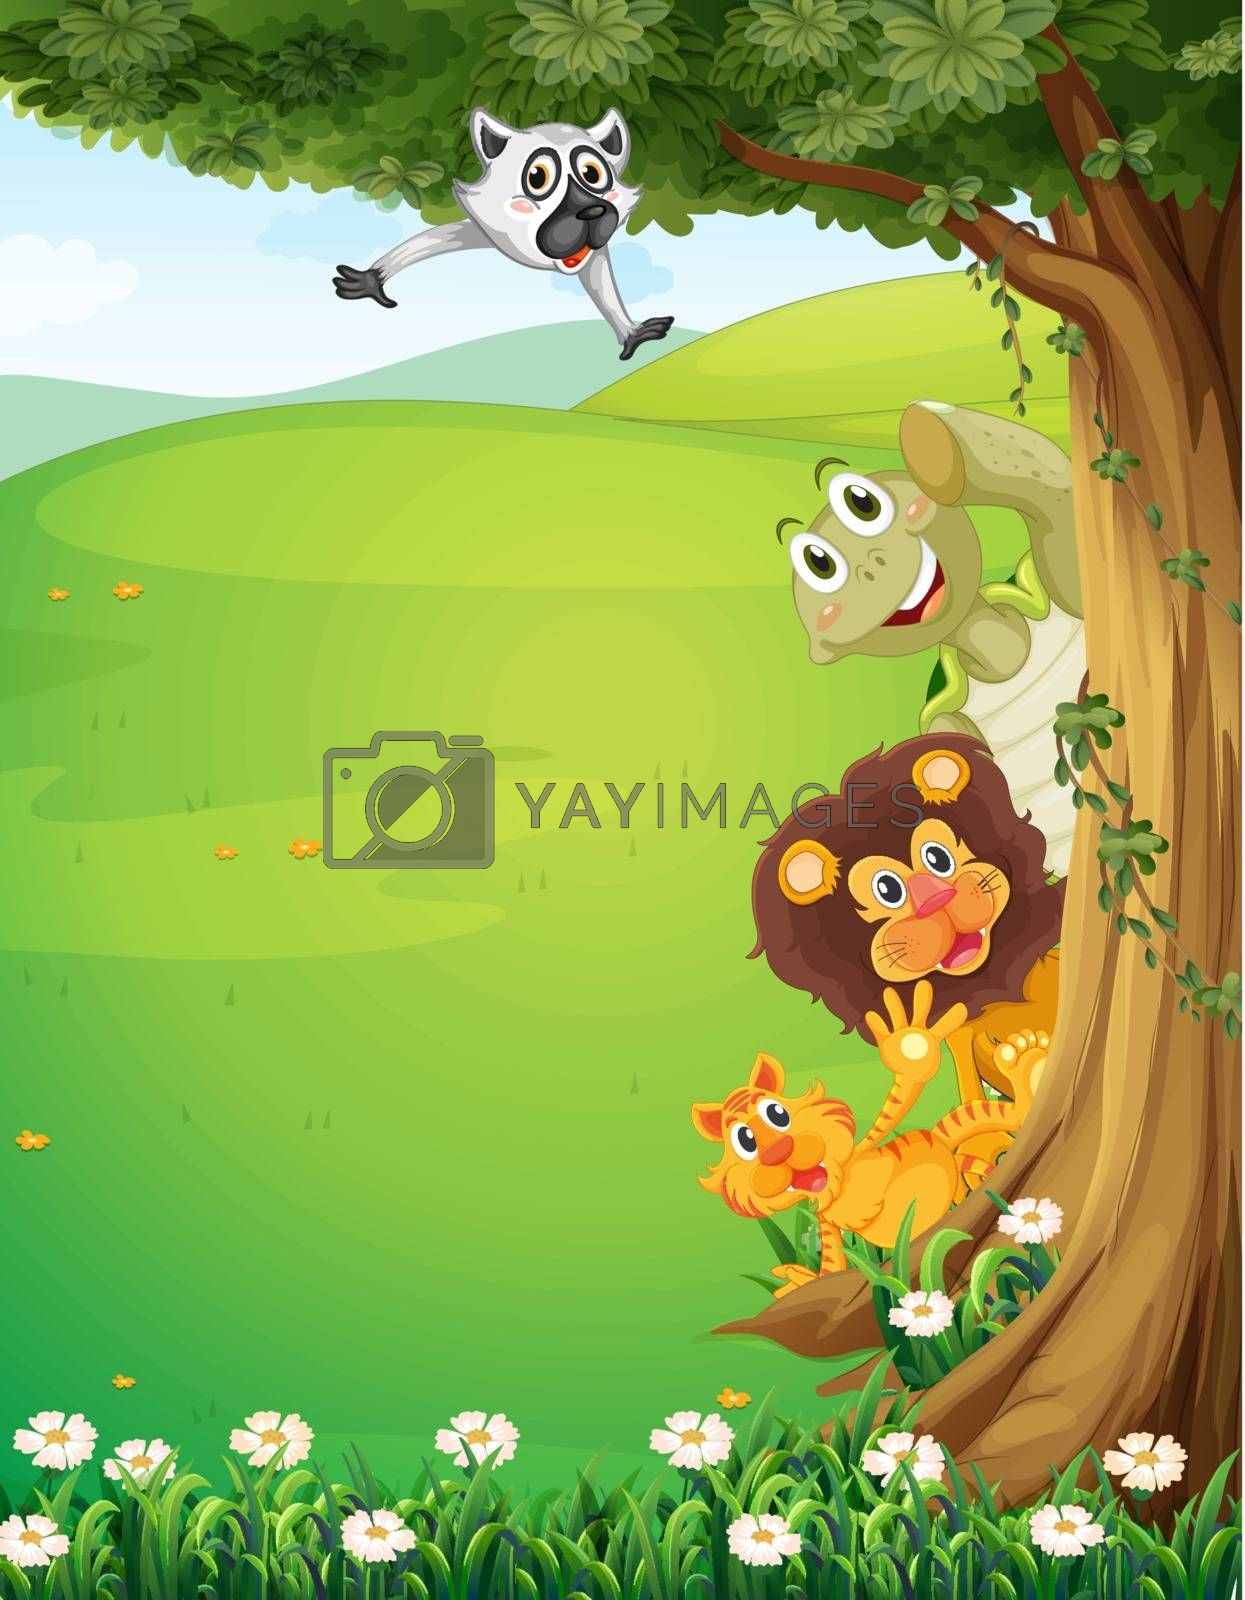 Illustration of a tree at the top of the hills with animals hiding